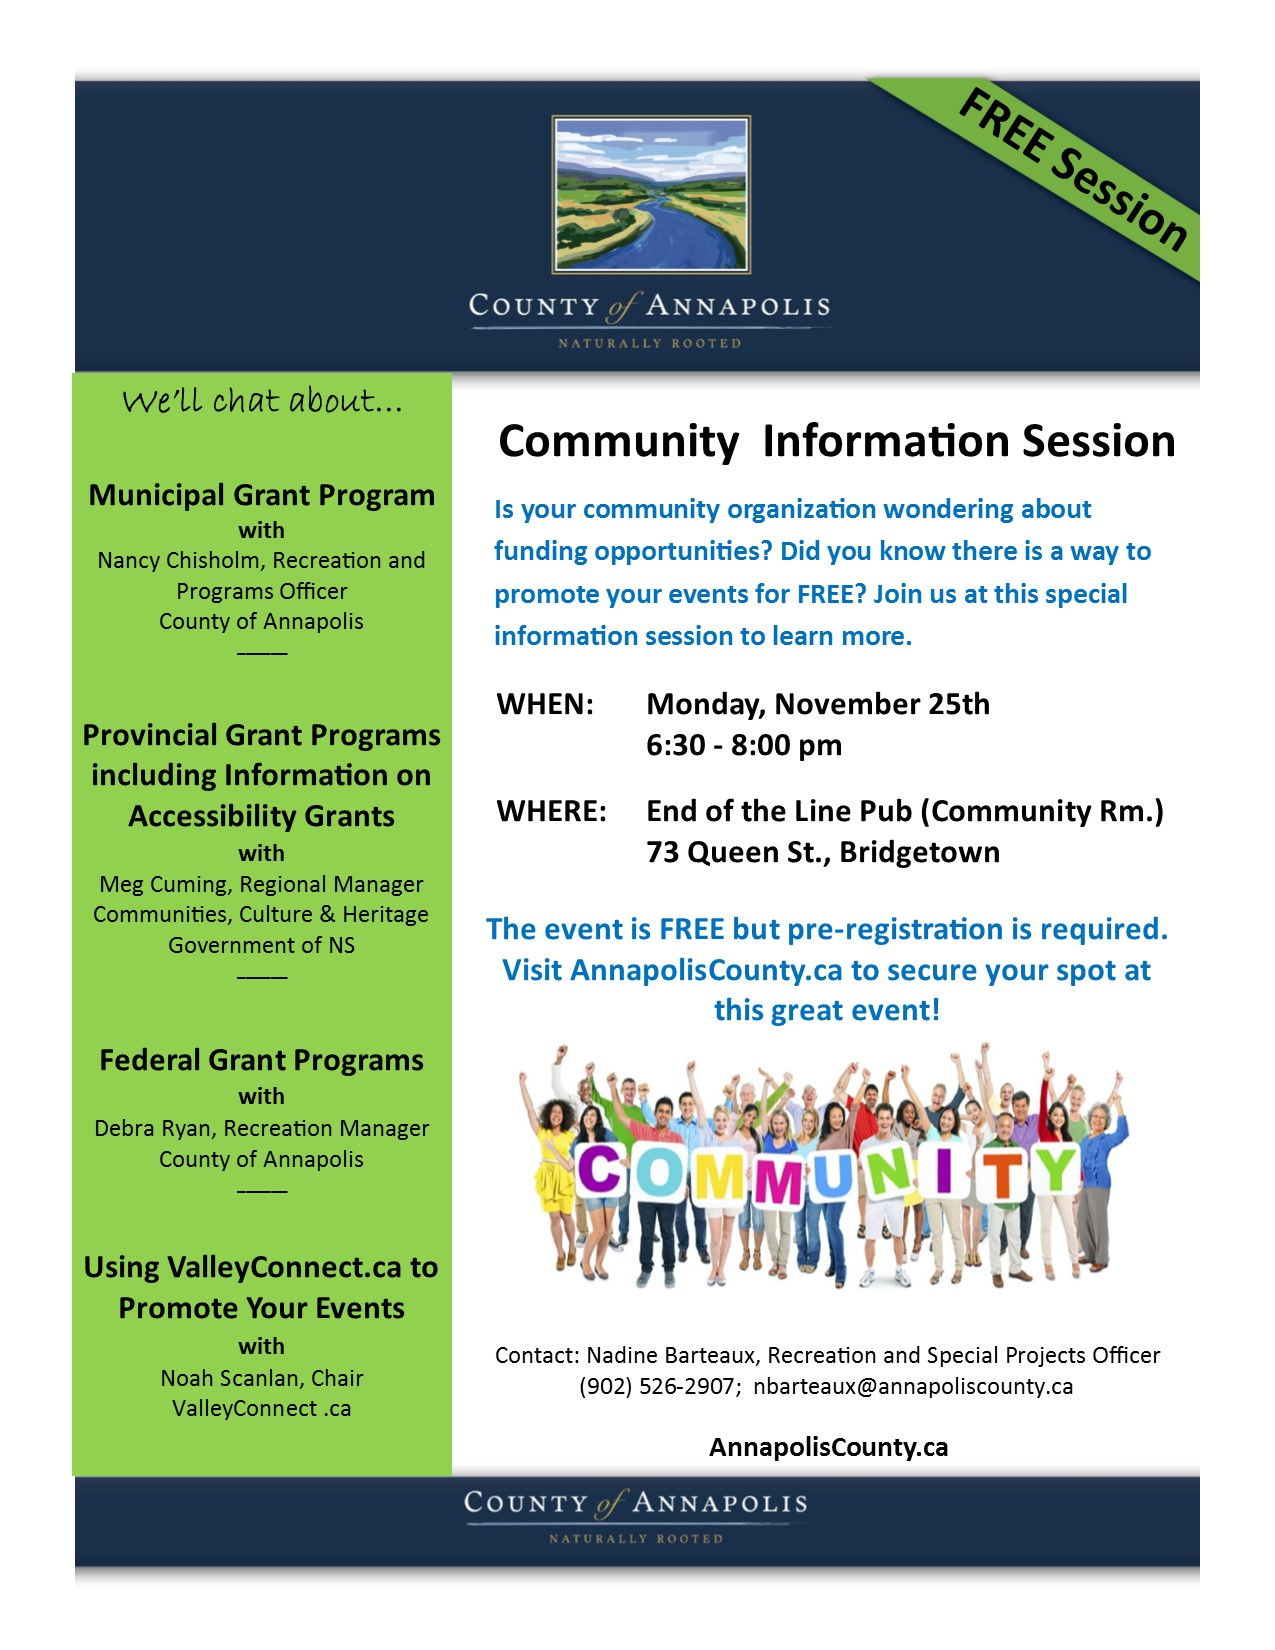 2019 Community Information Session